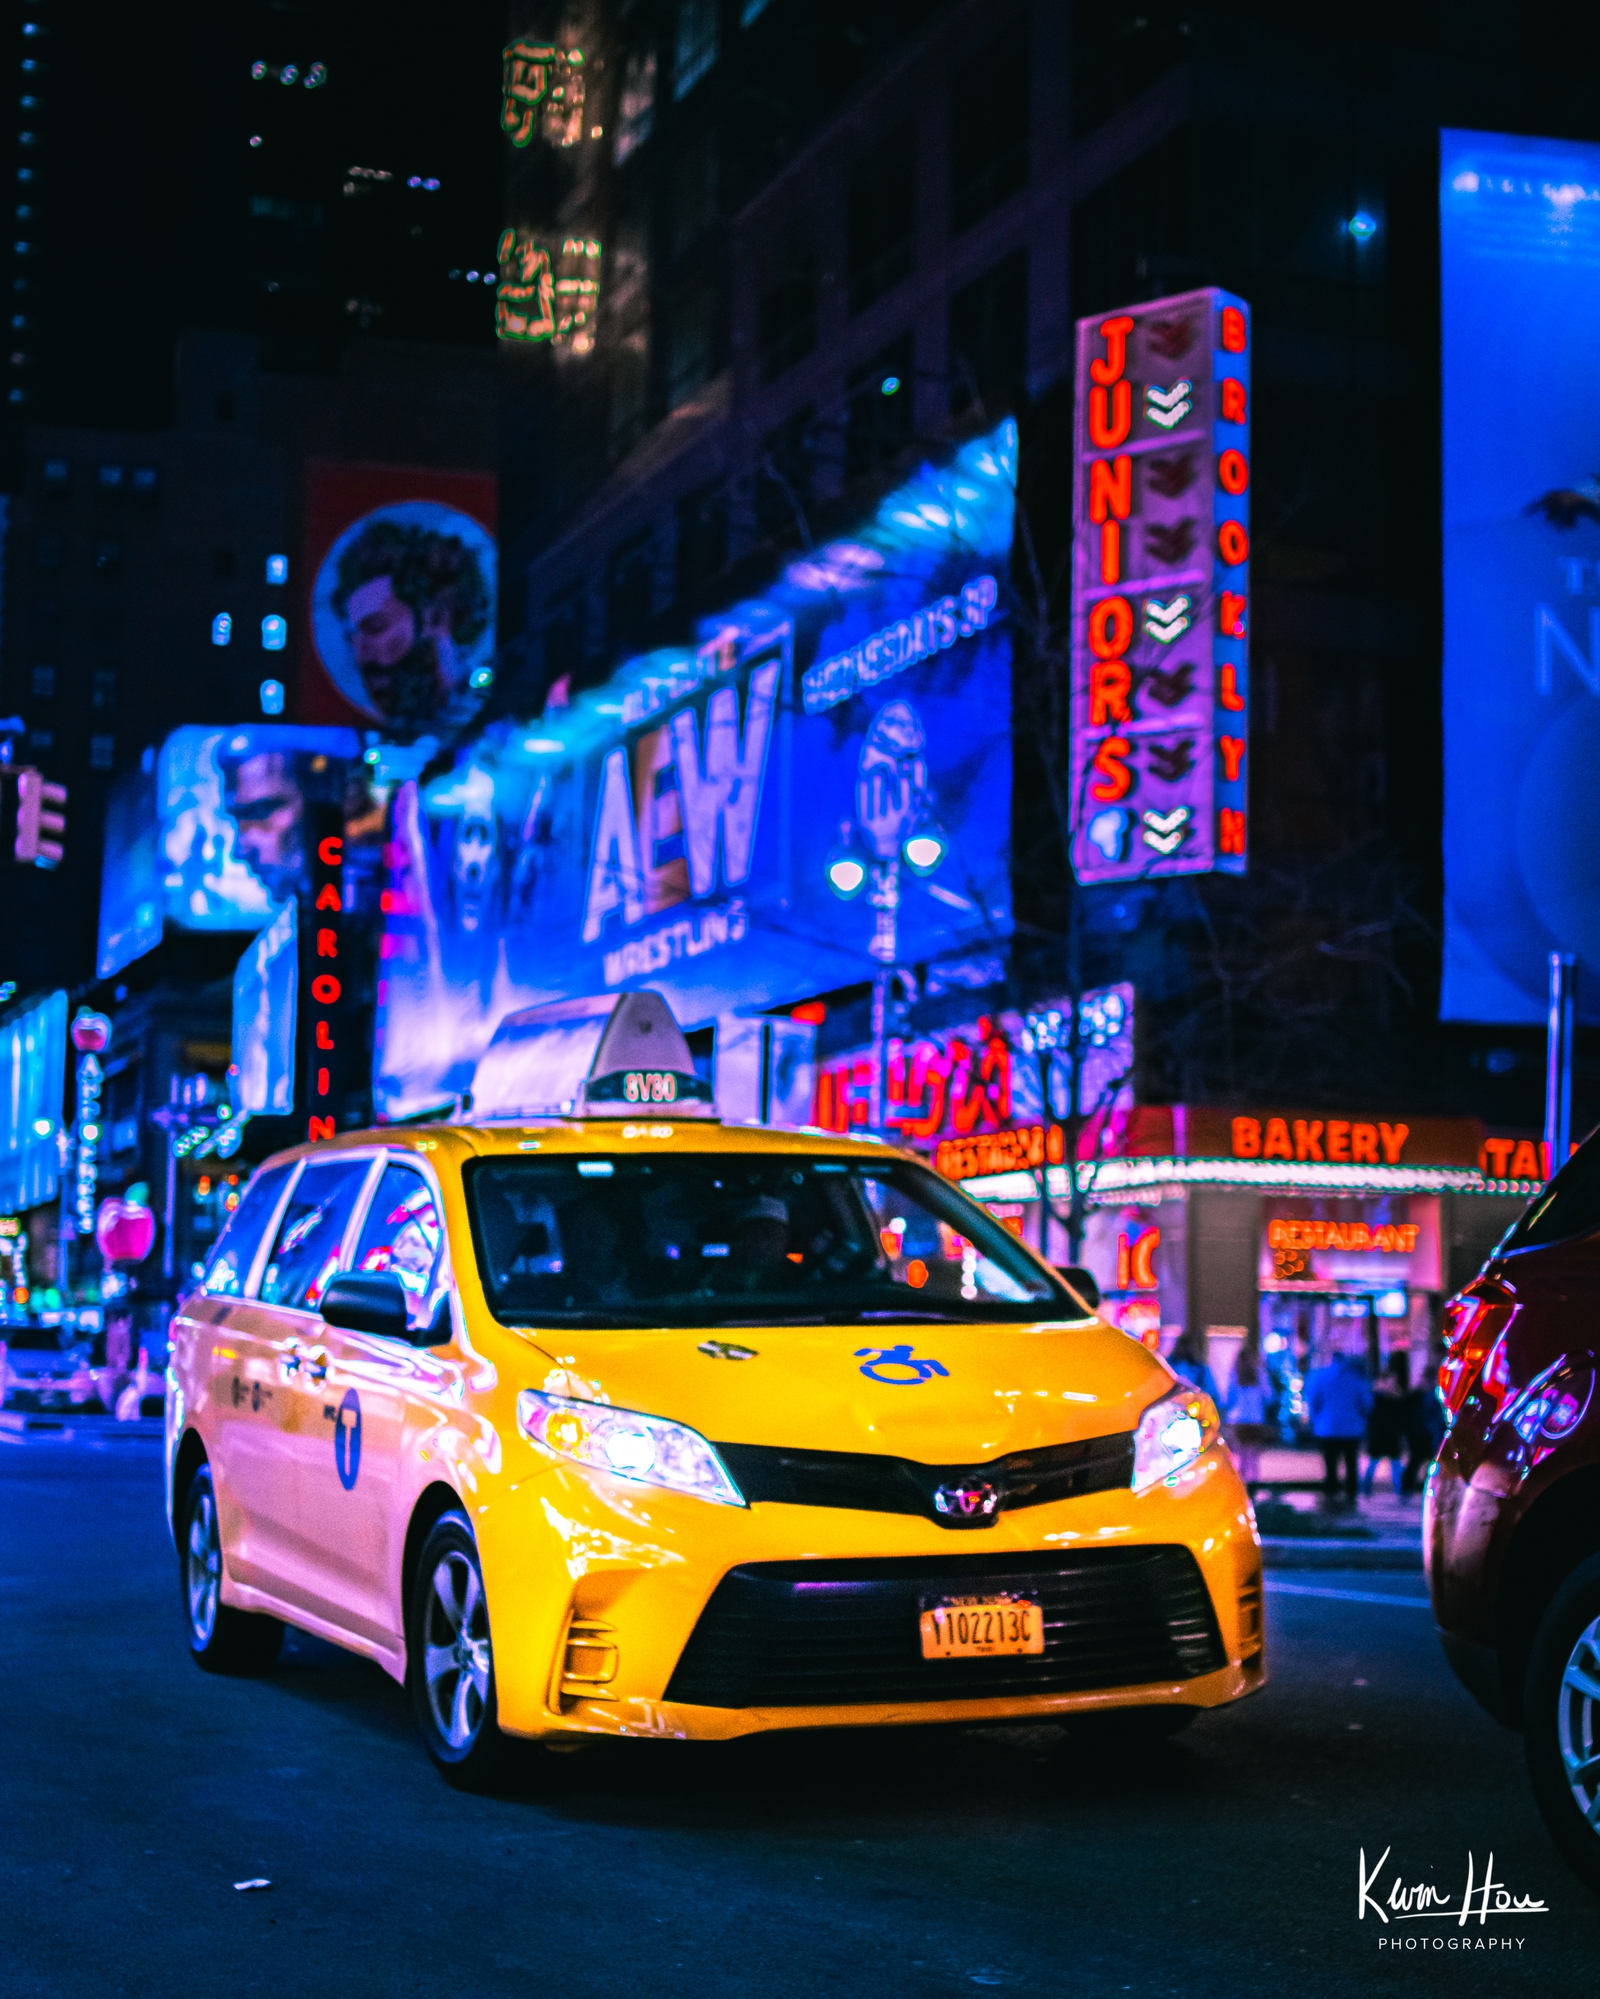 New York Times Square Taxi Car Neon Cyberpunk